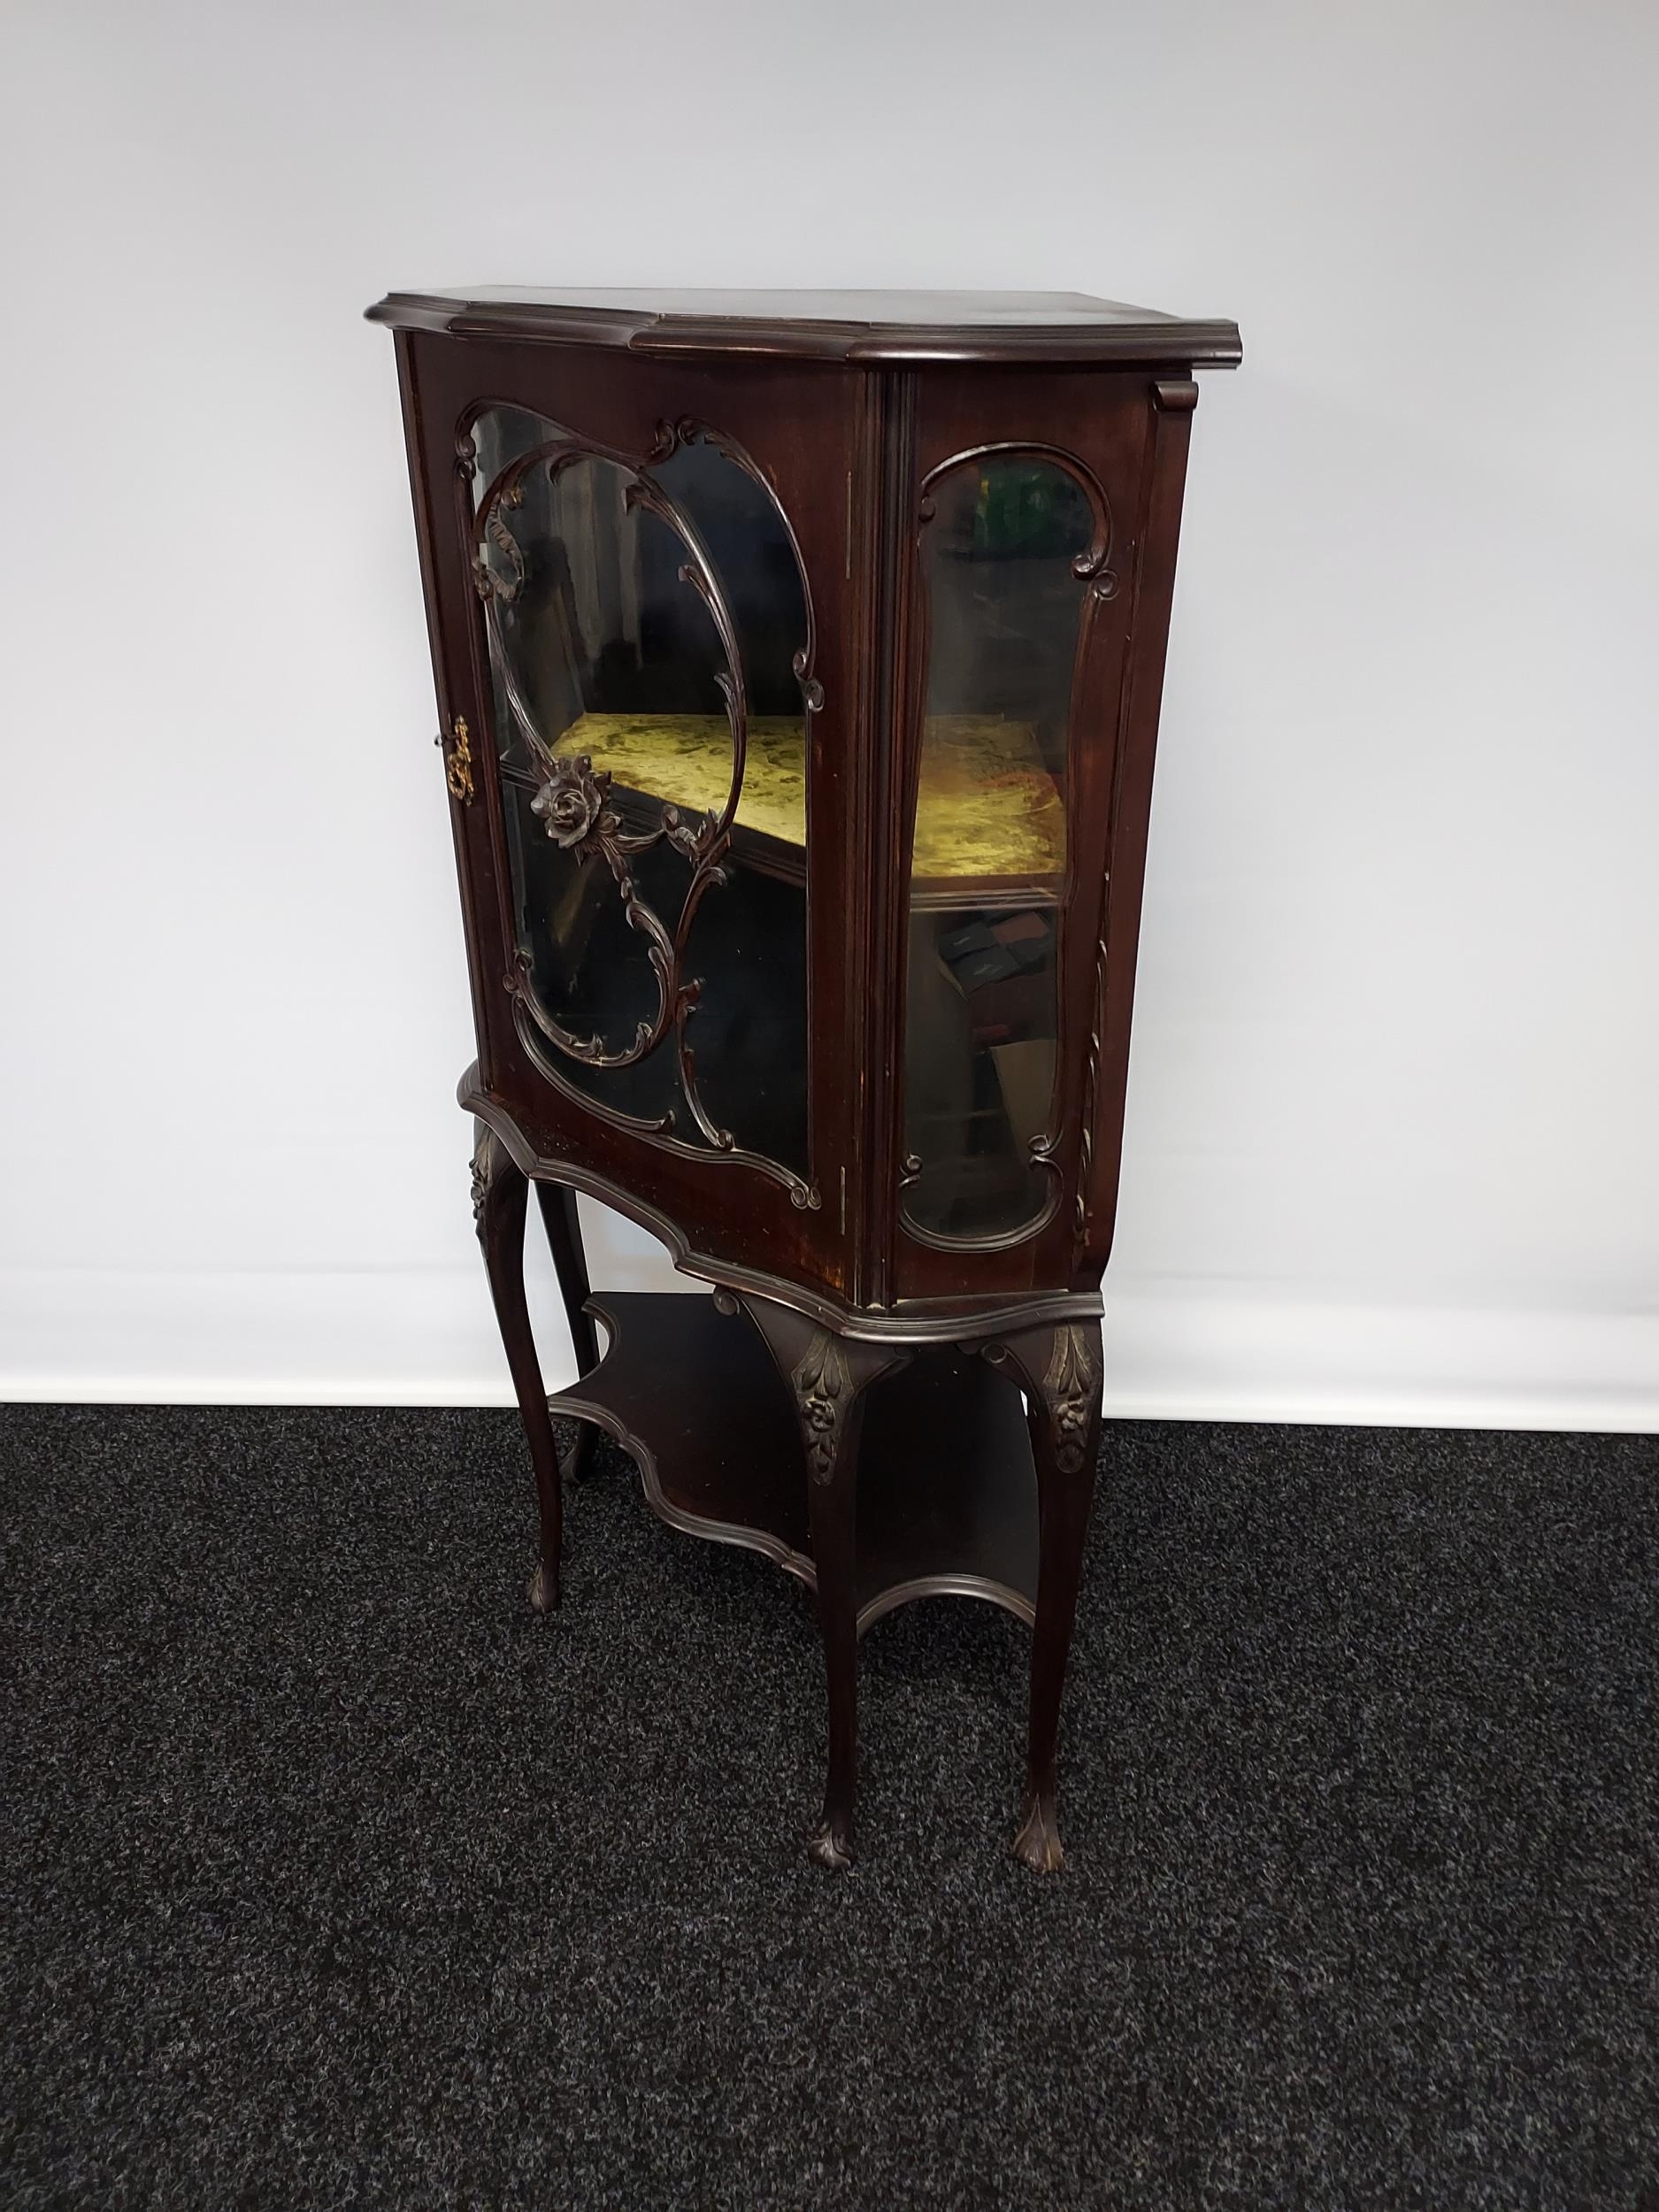 An antique Chippendale style ornate corner display cabinet. Comes with a key. [119x50x50cm] - Image 3 of 5